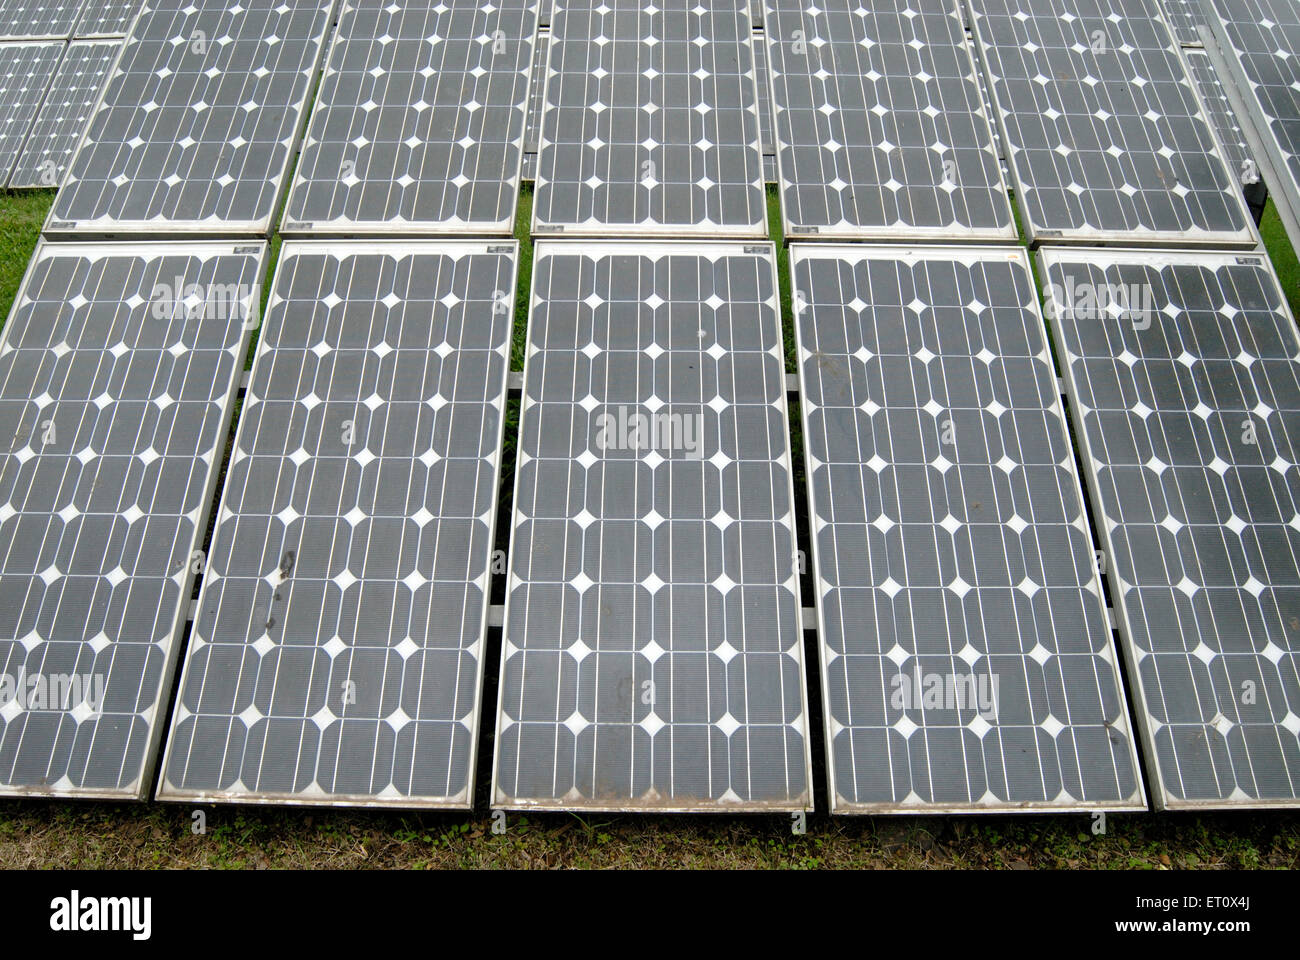 Unconventional power ; solar energy ; Photovoltaic cells at Peshawe energy park ; Pune ; Maharashtra ; India - Stock Image